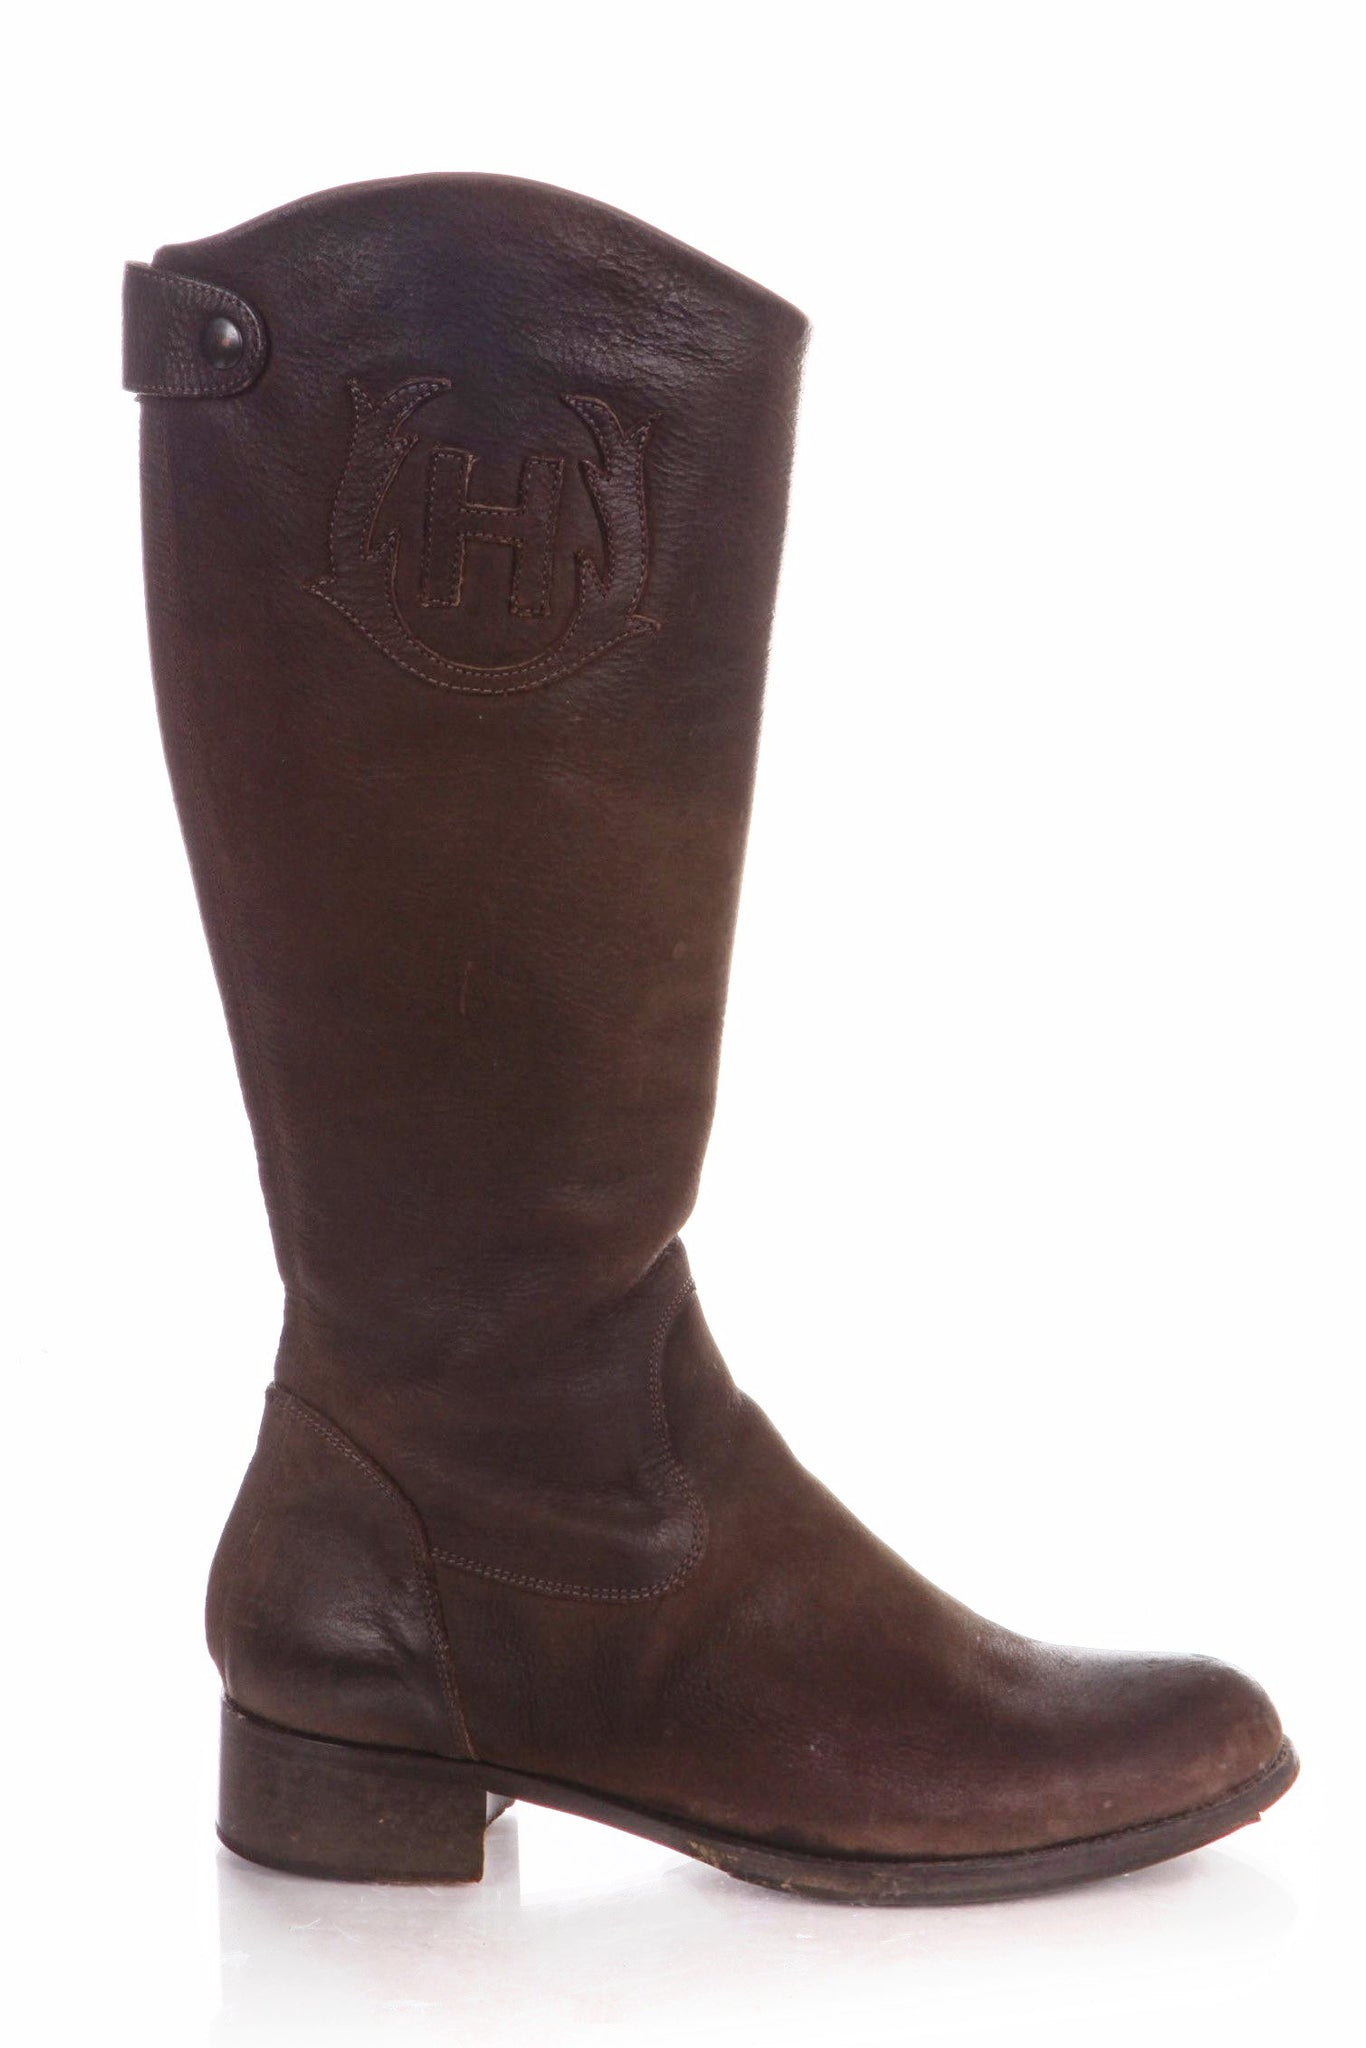 HUNTER Riding Boots Leather Knee High Equestrian Size 39